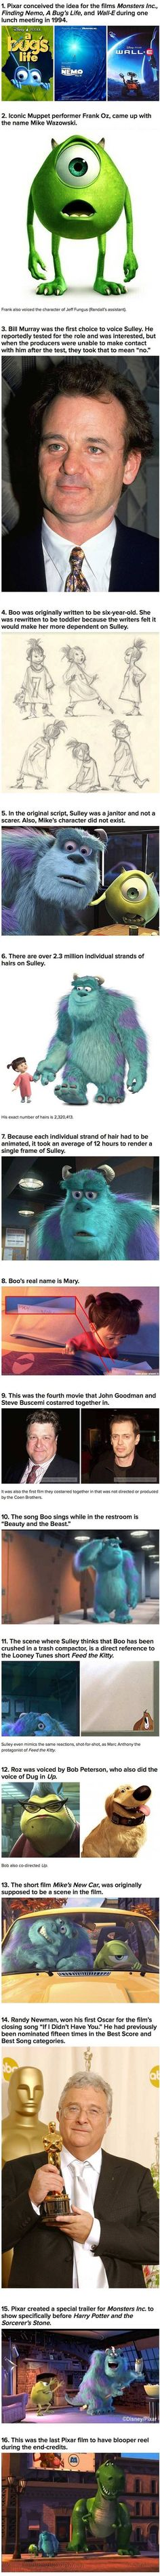 16 things you might not know about Monsters Inc - Humor Madness